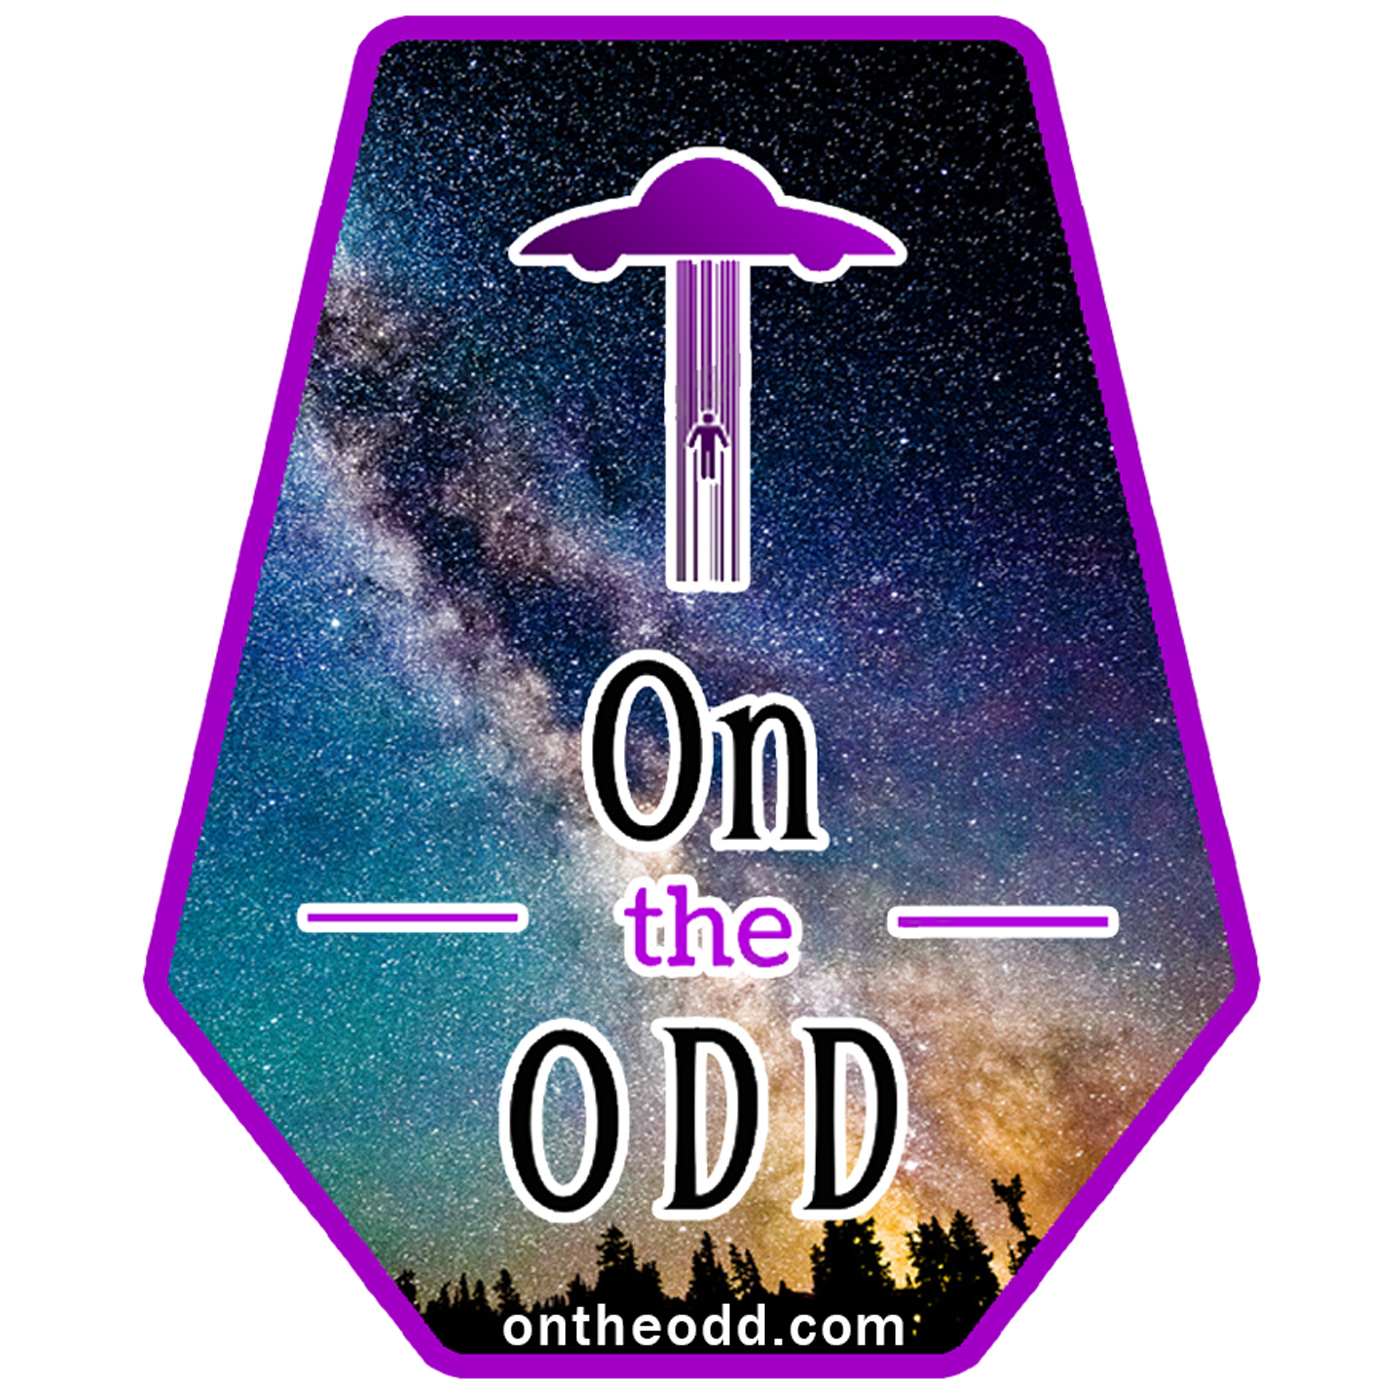 On The Odd: Cults, Hauntings, The Paranormal & Unexplained